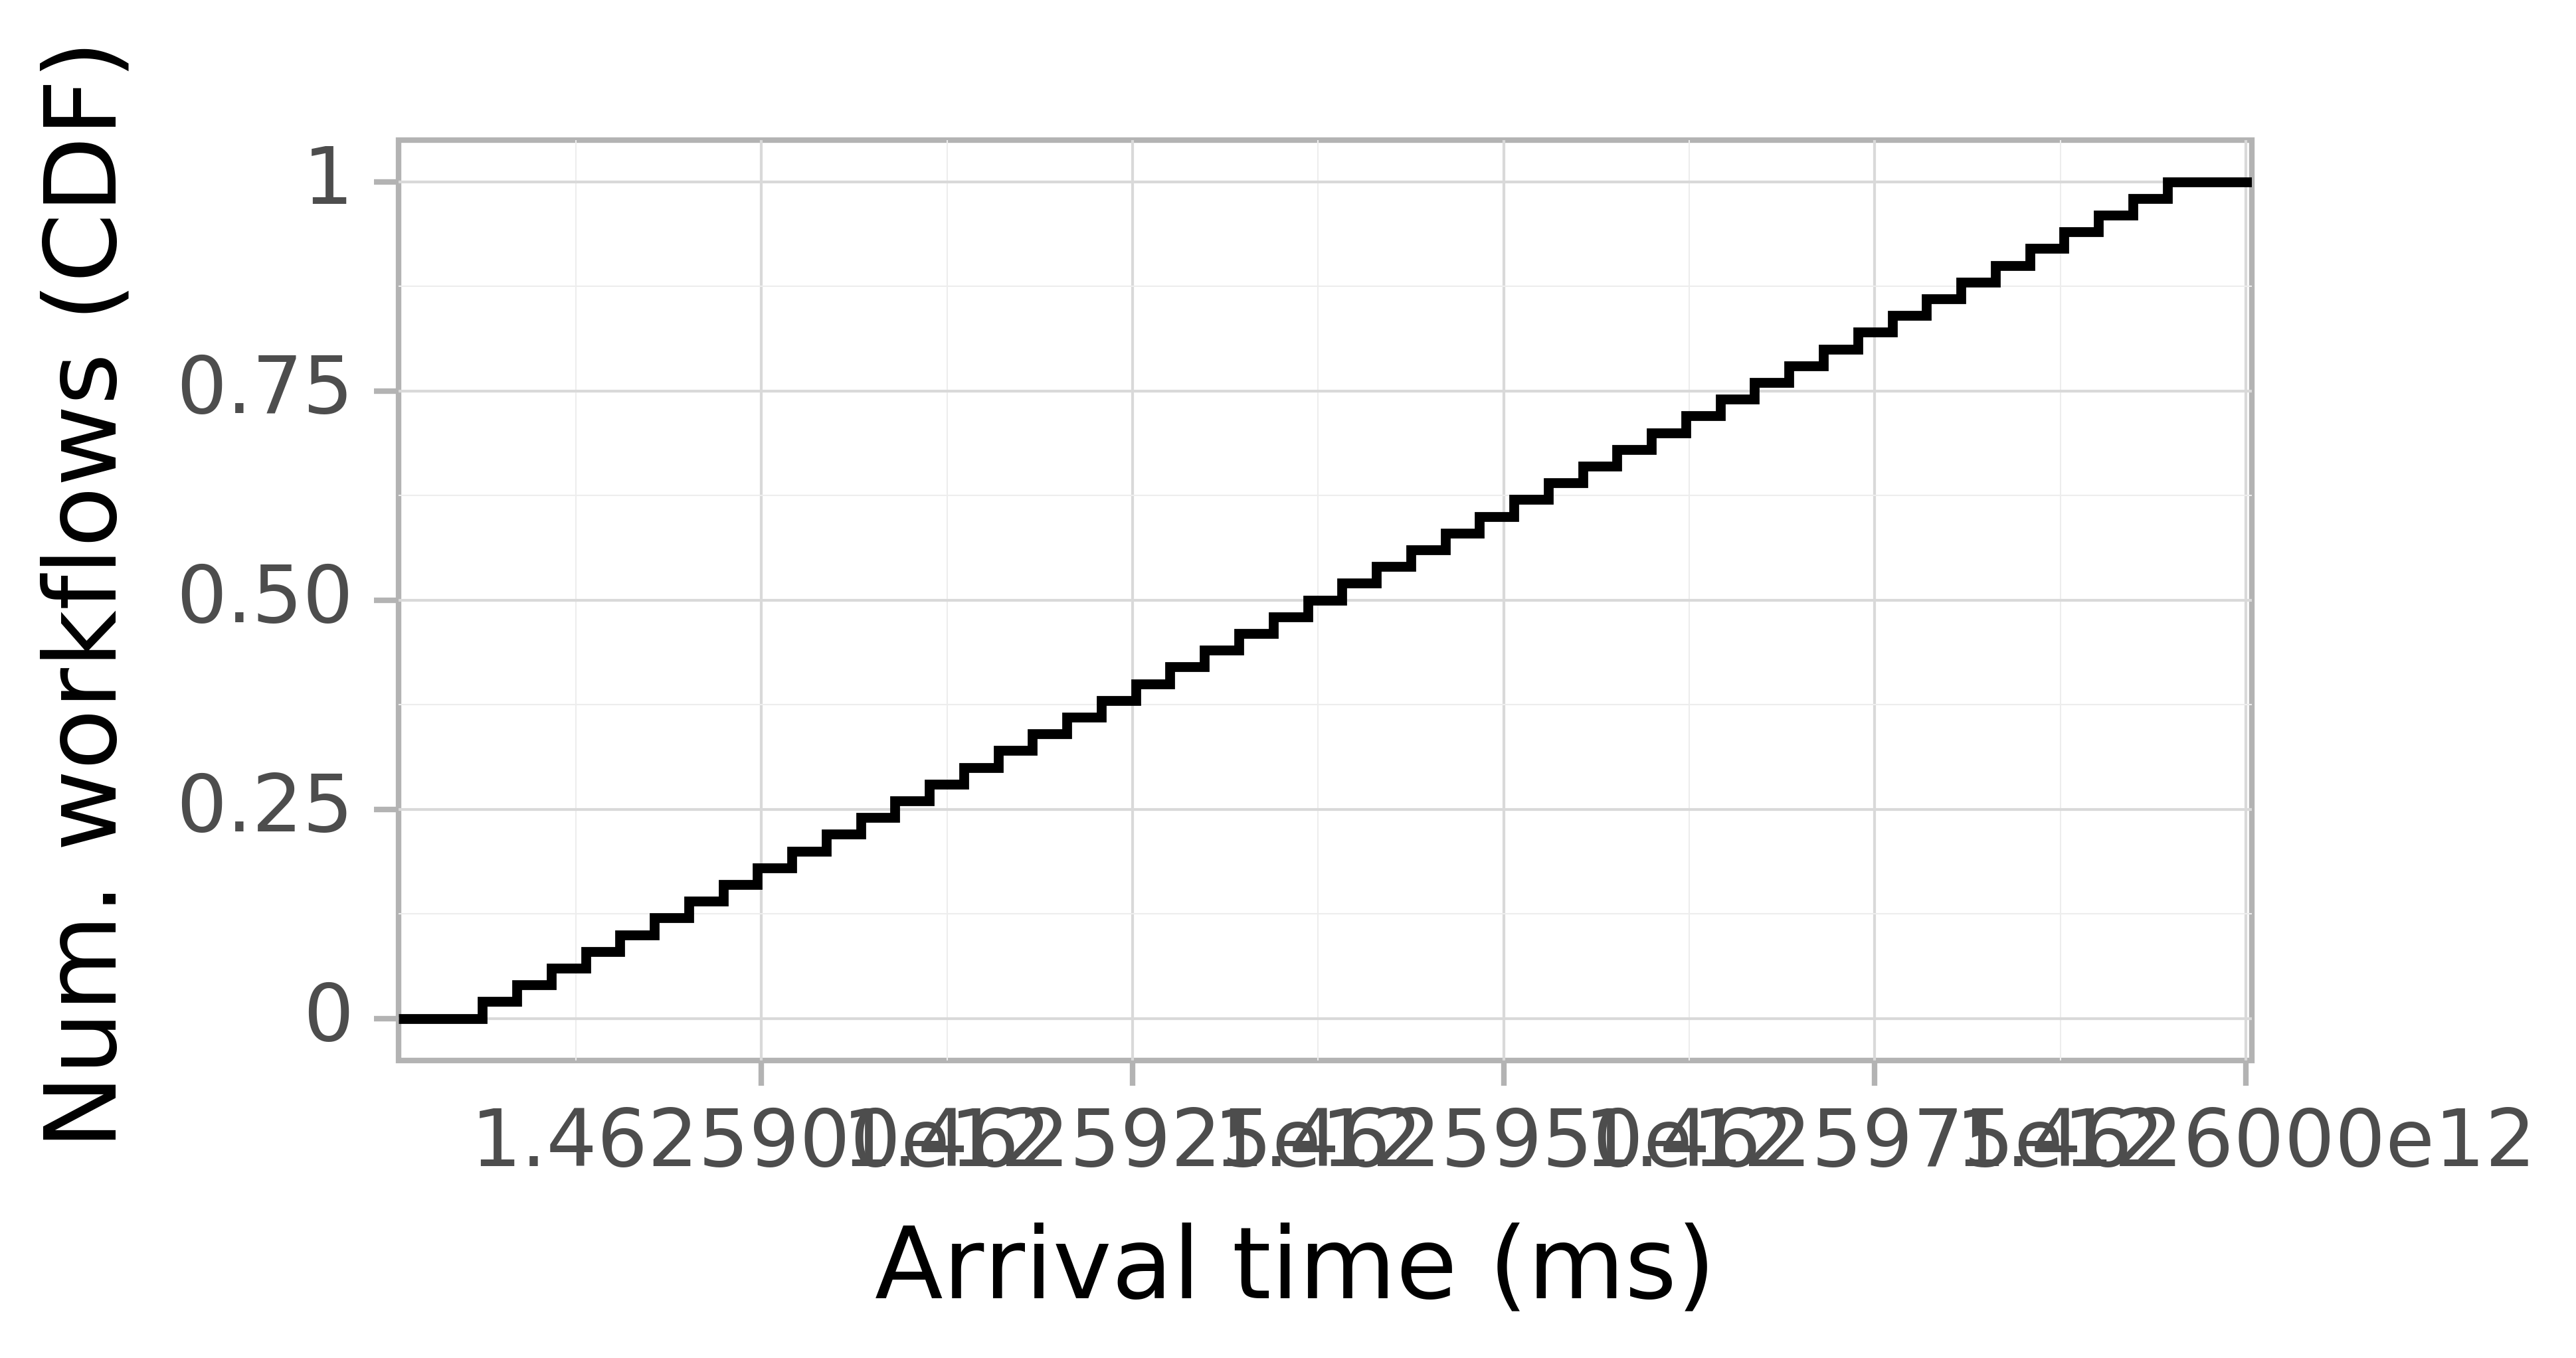 Job arrival CDF graph for the askalon-new_ee43 trace.